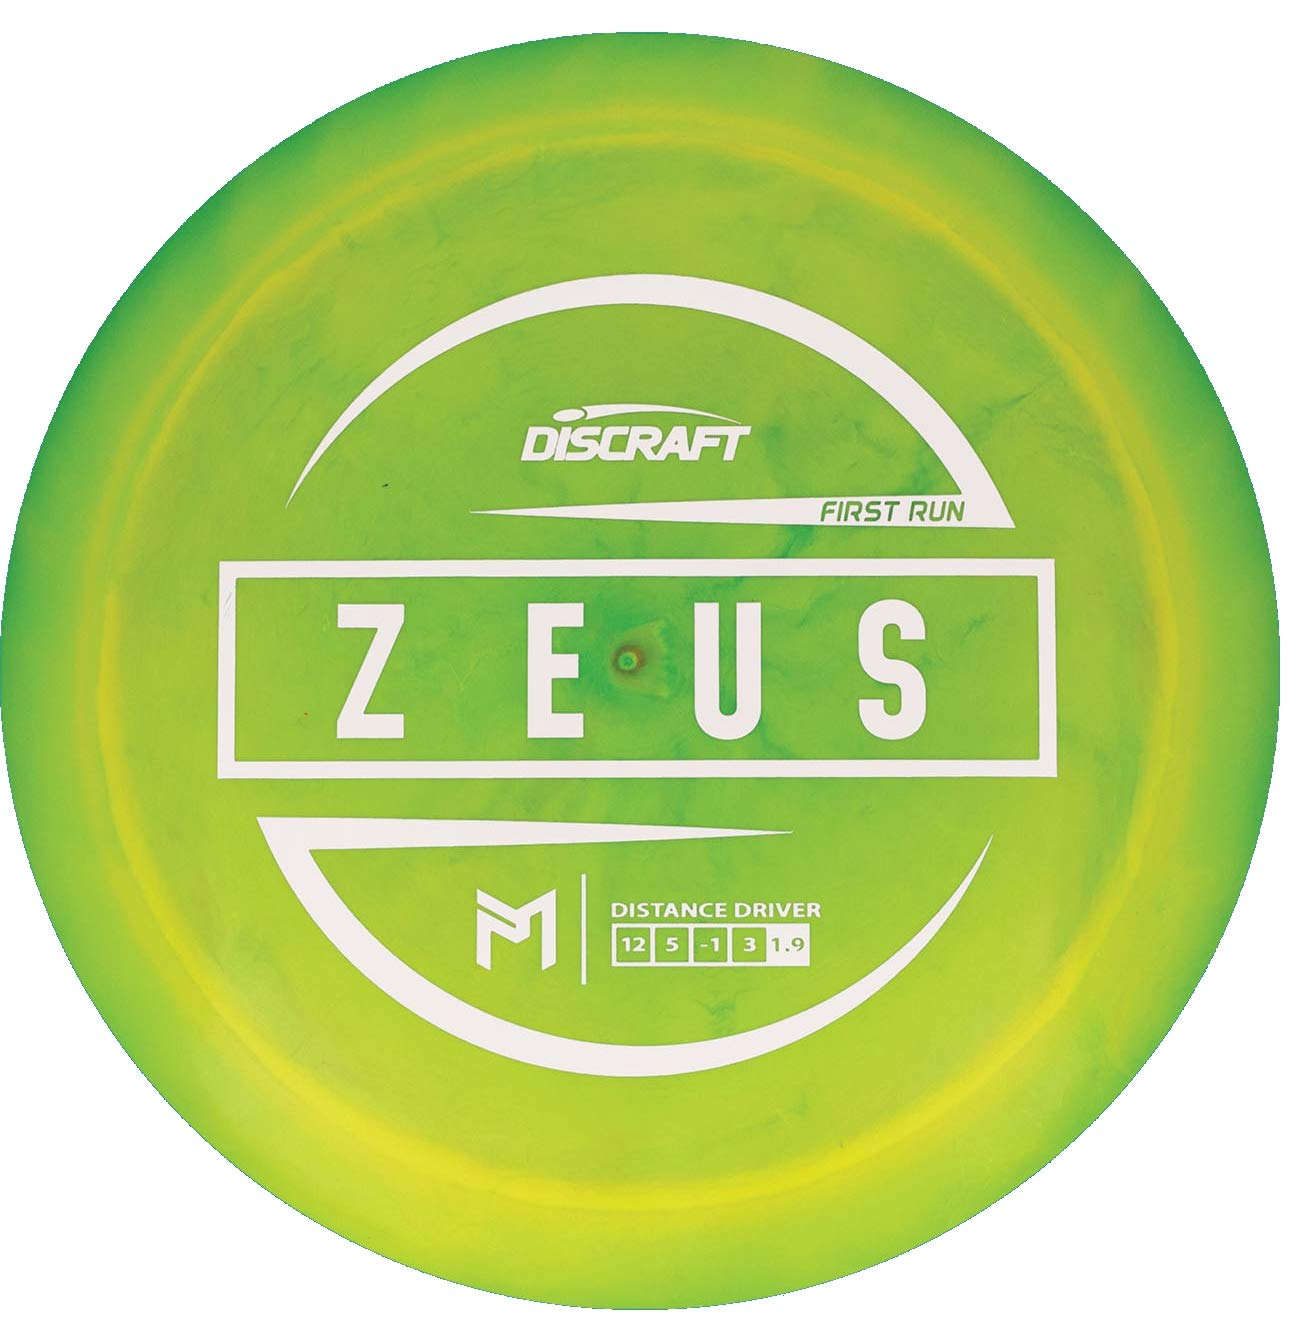 Discraft Limited Edition Paul McBeth Signature First Run Elite Z Zeus Distance Driver Golf Disc [Colors May Vary] - 167-169g